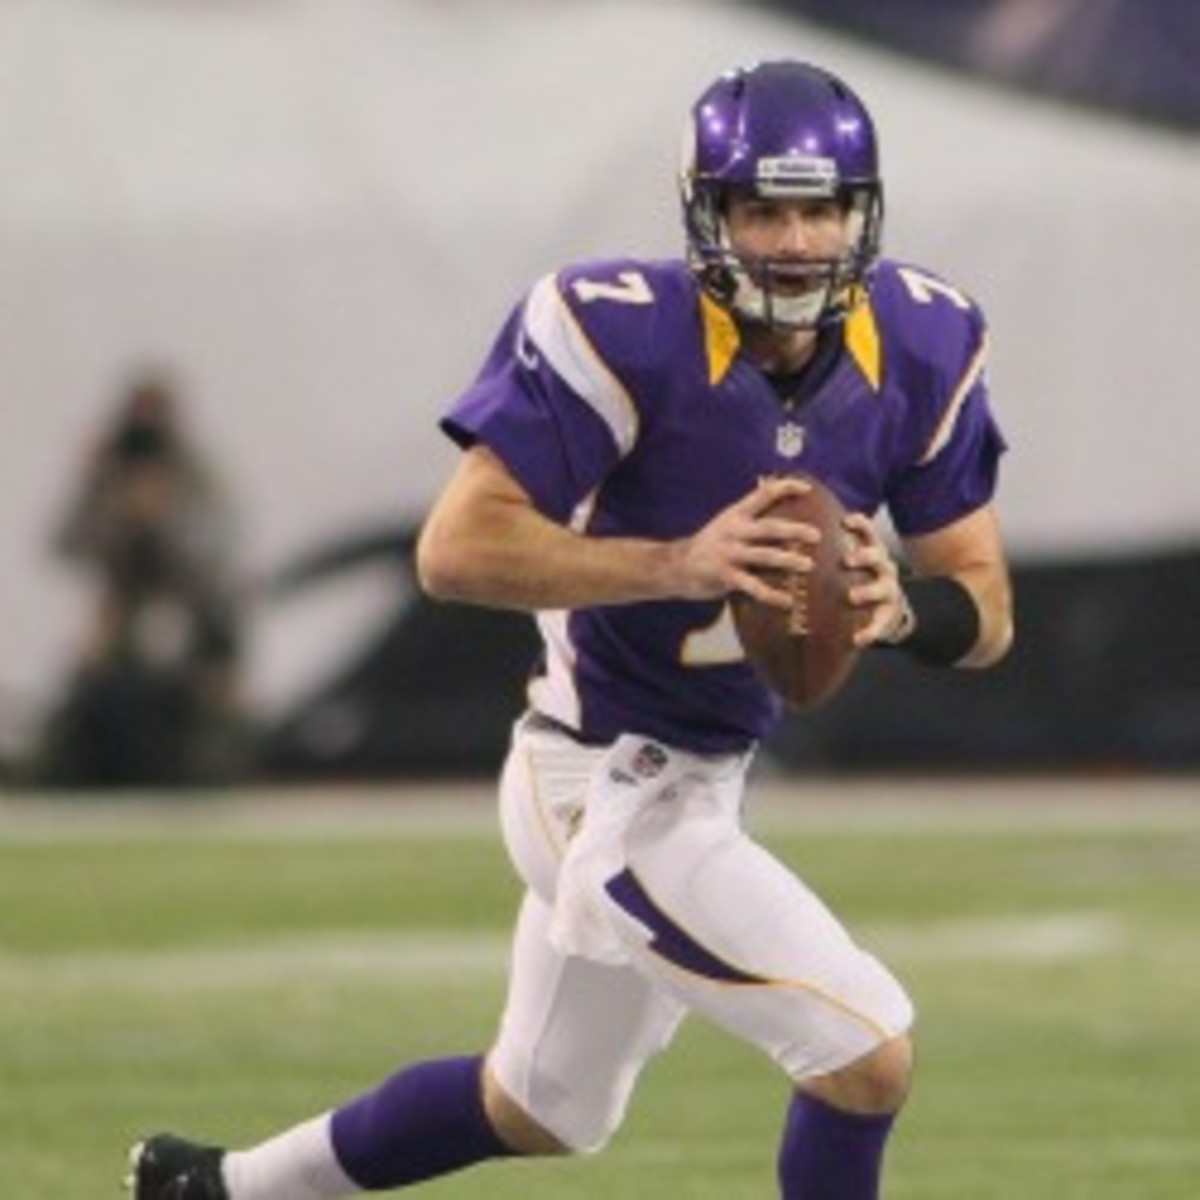 Vikings quarterback Christian Ponder needs to have a big 2013 season if he wants to keep his job.  (Andy King/Getty Images)